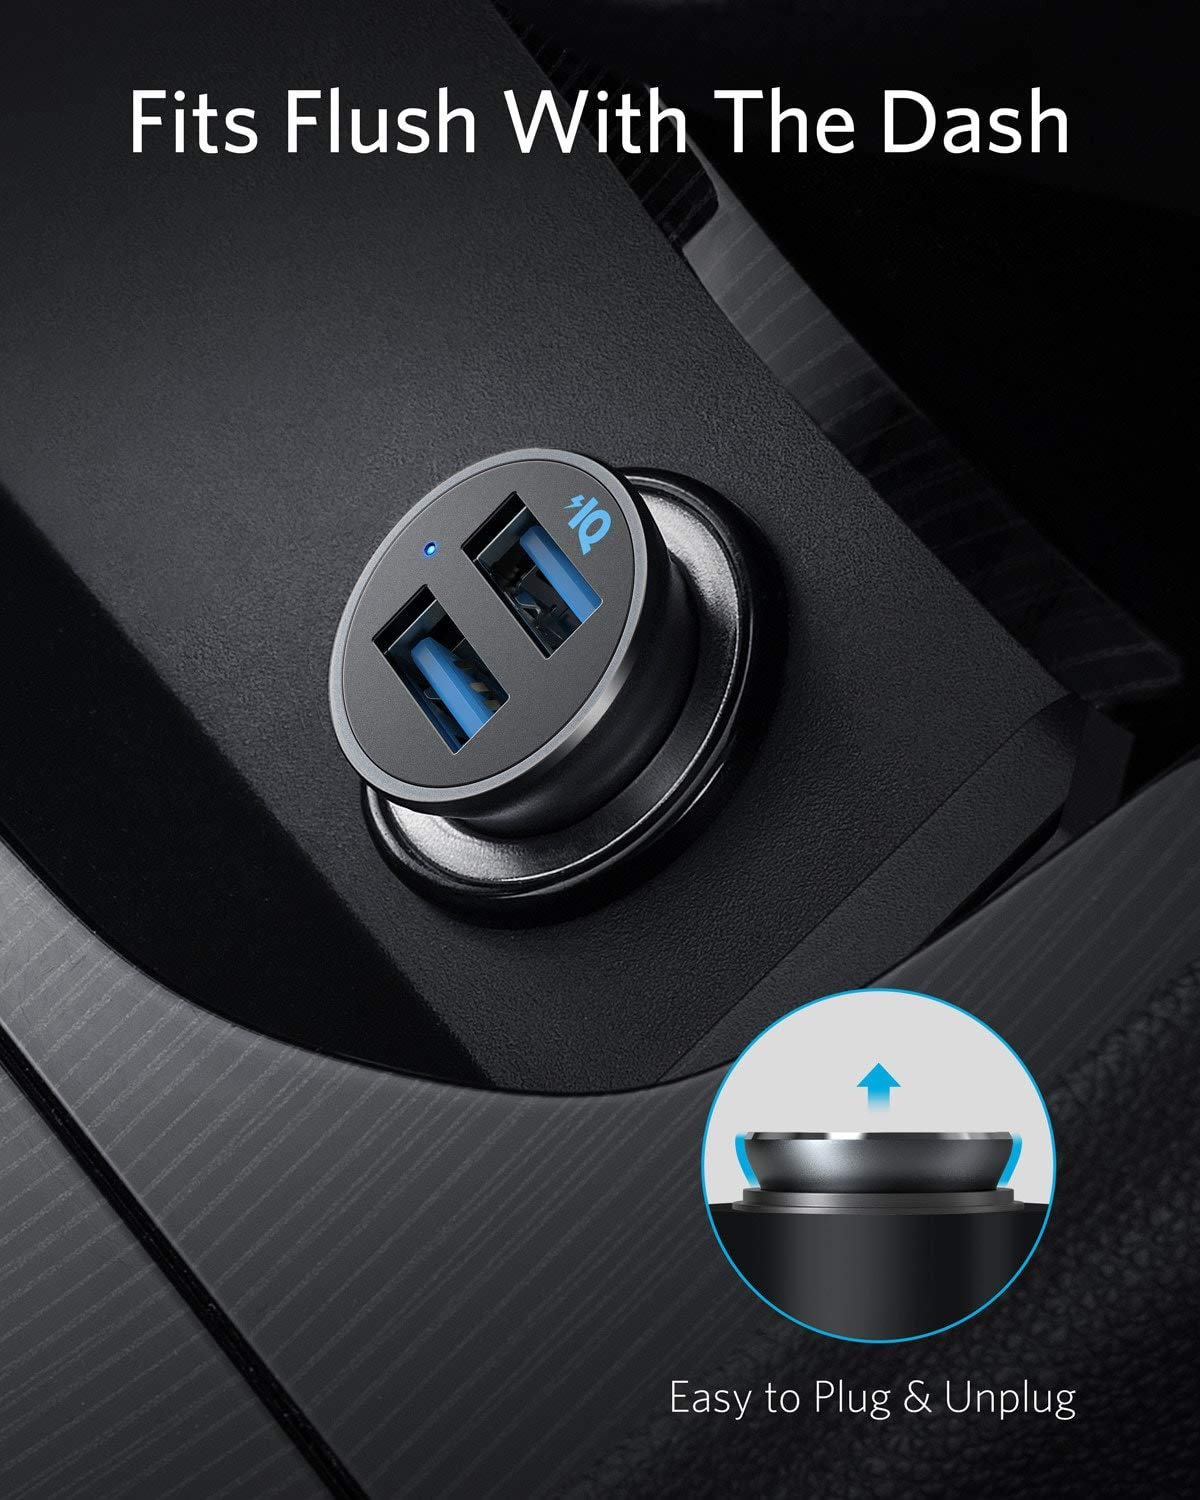 PowerDrive 2 Alloy Flush Fit Car Adapter with Blue LED Galaxy iPad Pro//Air 2//Mini LG Anker Car Charger Mini 24W 4.8A Metal Dual USB Car Charger HTC and More for iPhone XR//Xs//Max//X//8//7//Plus